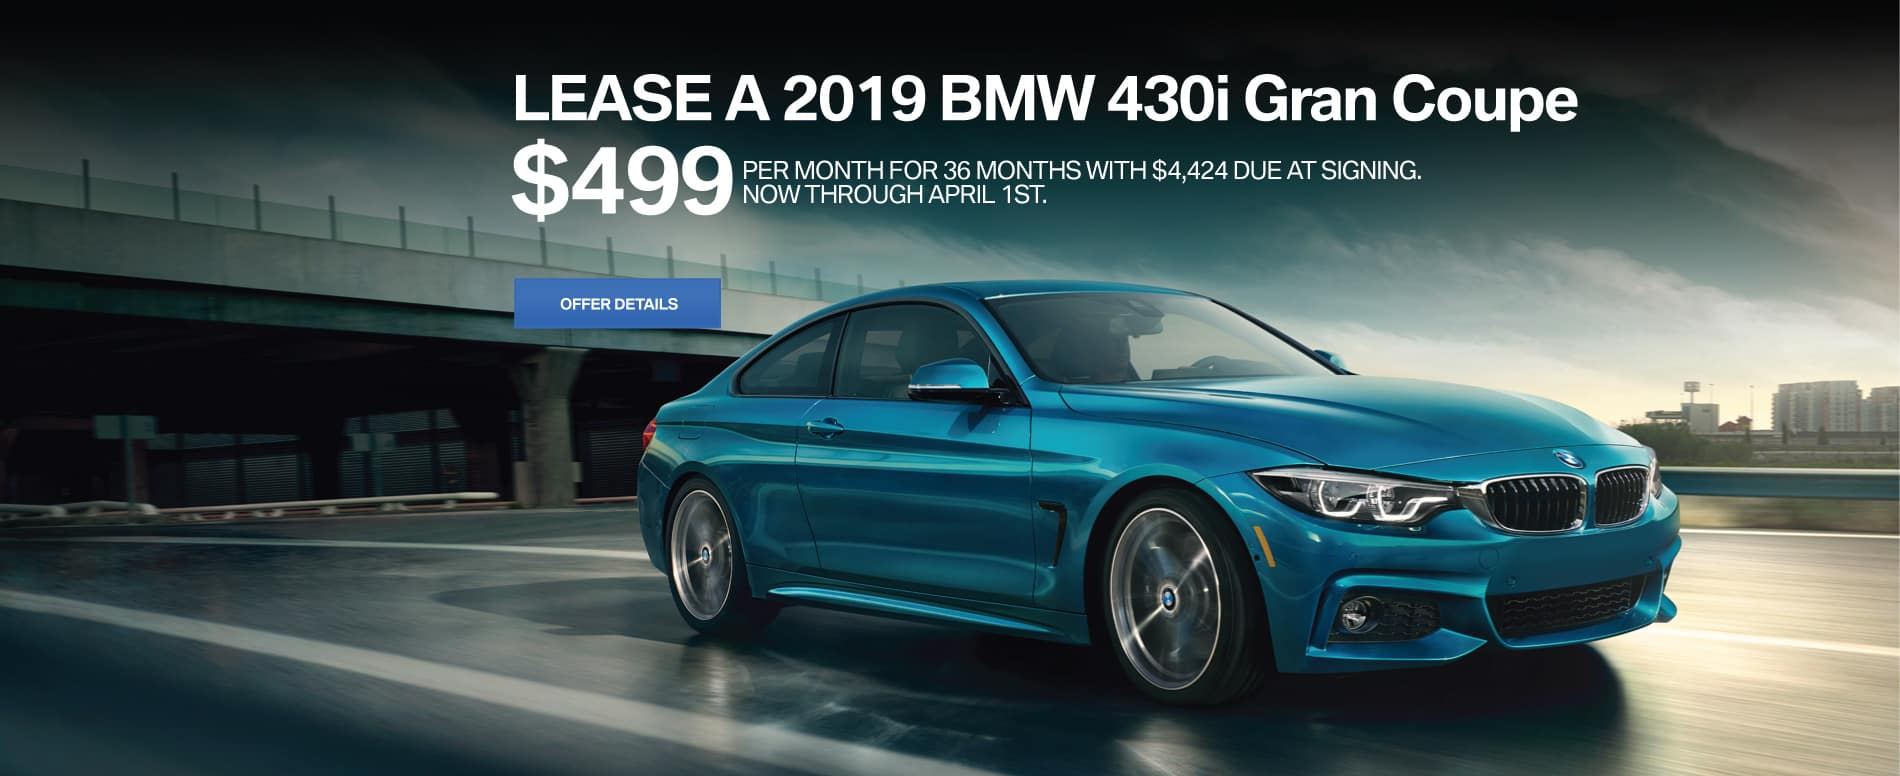 430i Gran Coupe Lease offer